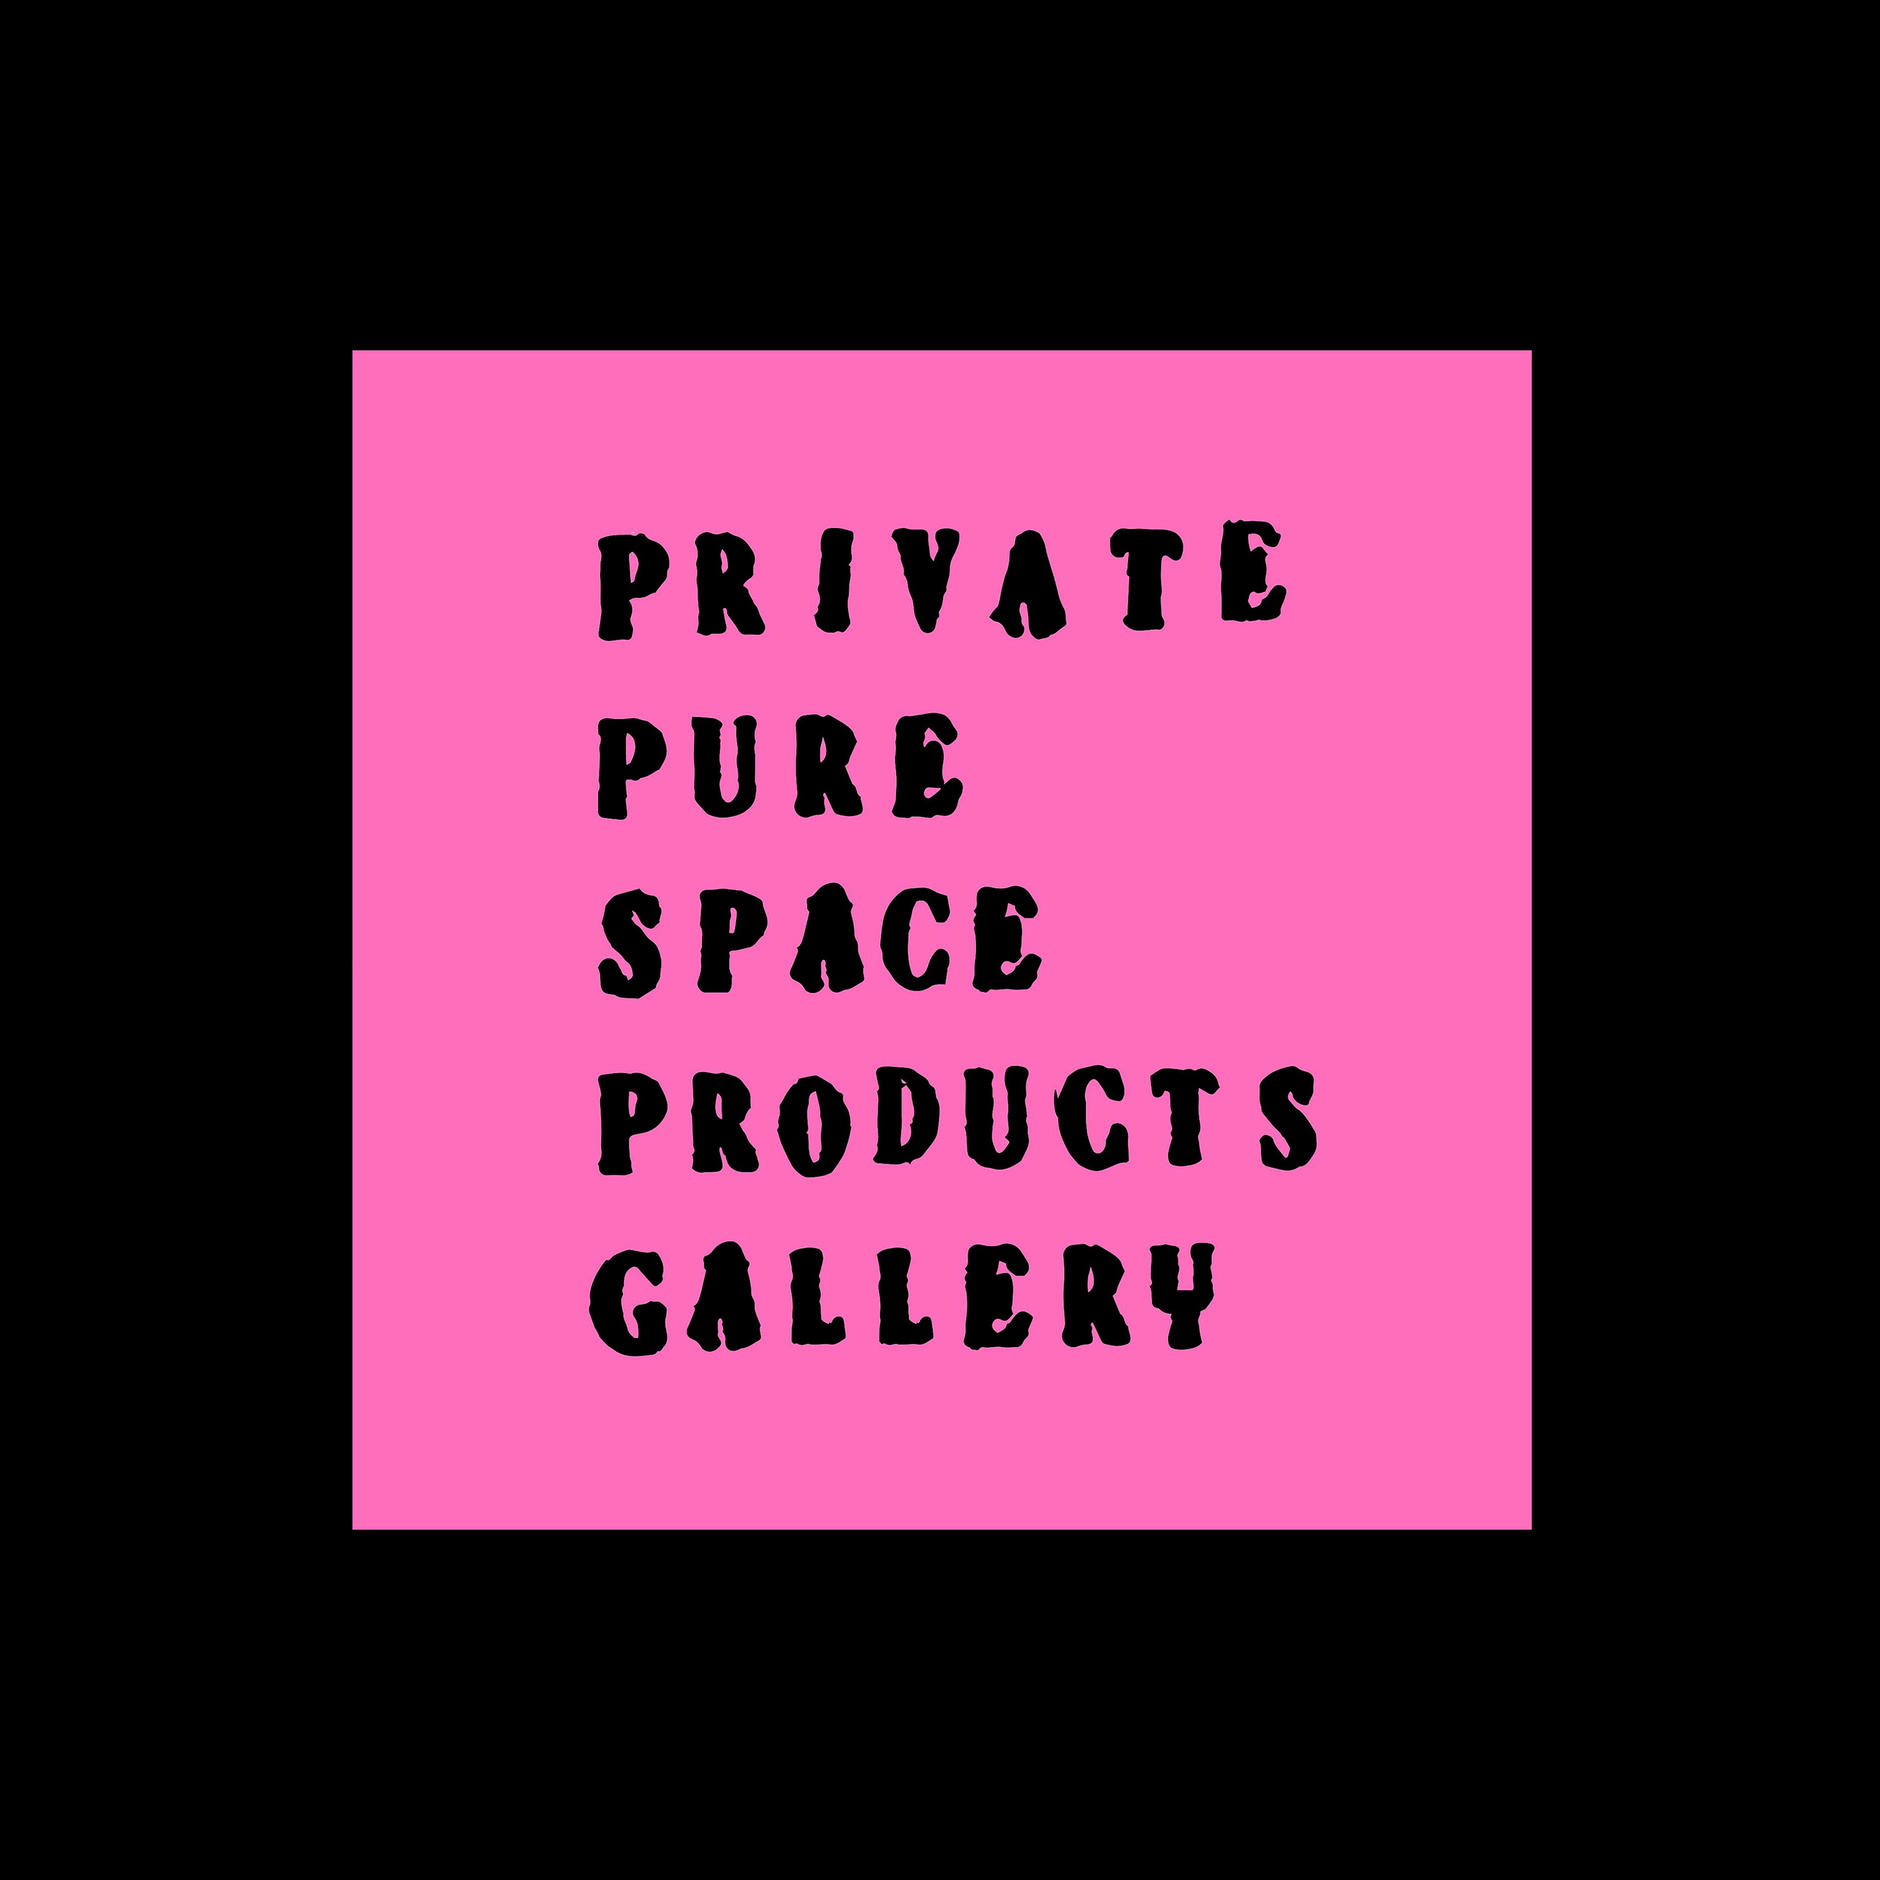 PRIVATE PURE SPACE PRODUCTS GALLERY